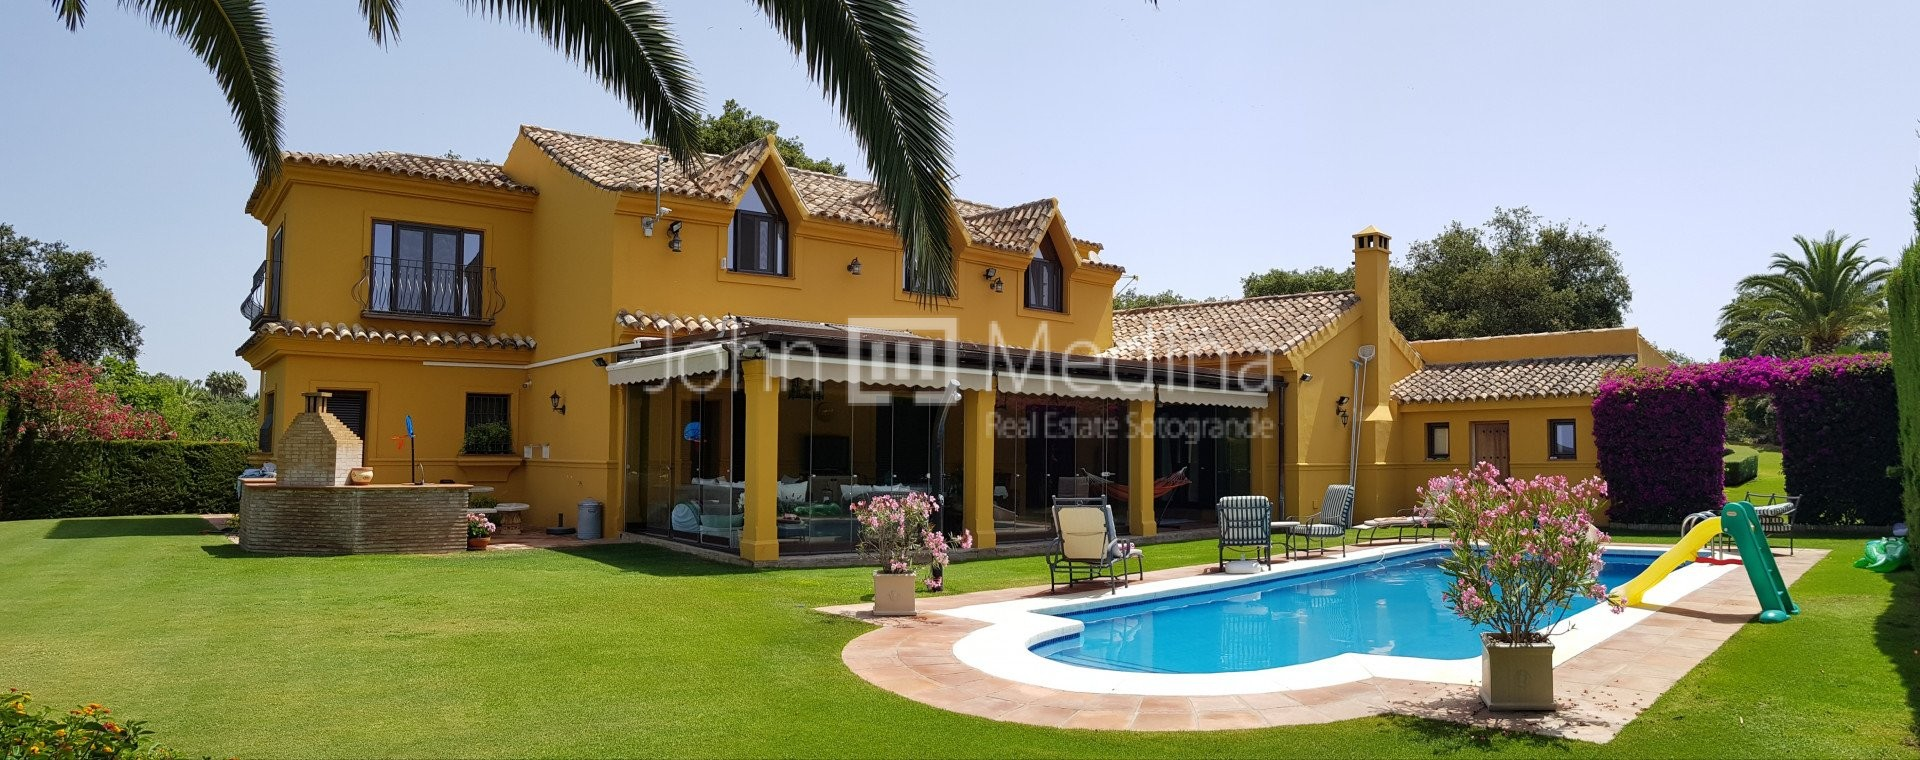 CHARMING FAMILY VILLA IN A QUIET STREET WITH LARGE MATURE GARDENS